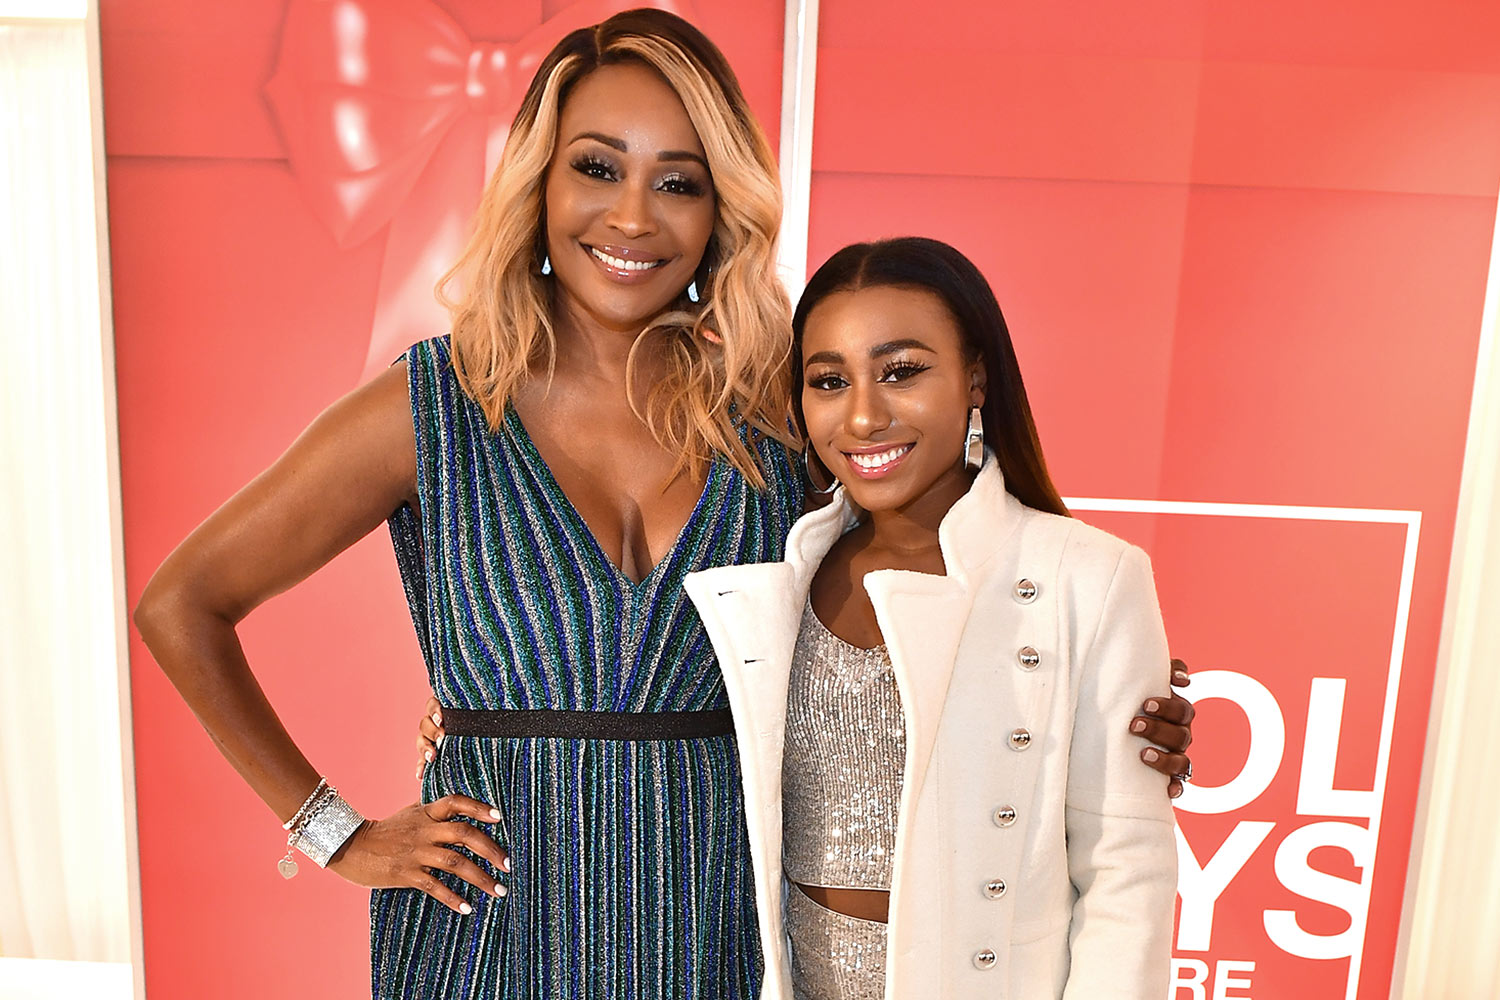 cynthia-bailey-addresses-symbols-and-good-luck-and-prosperity-check-out-her-post-here